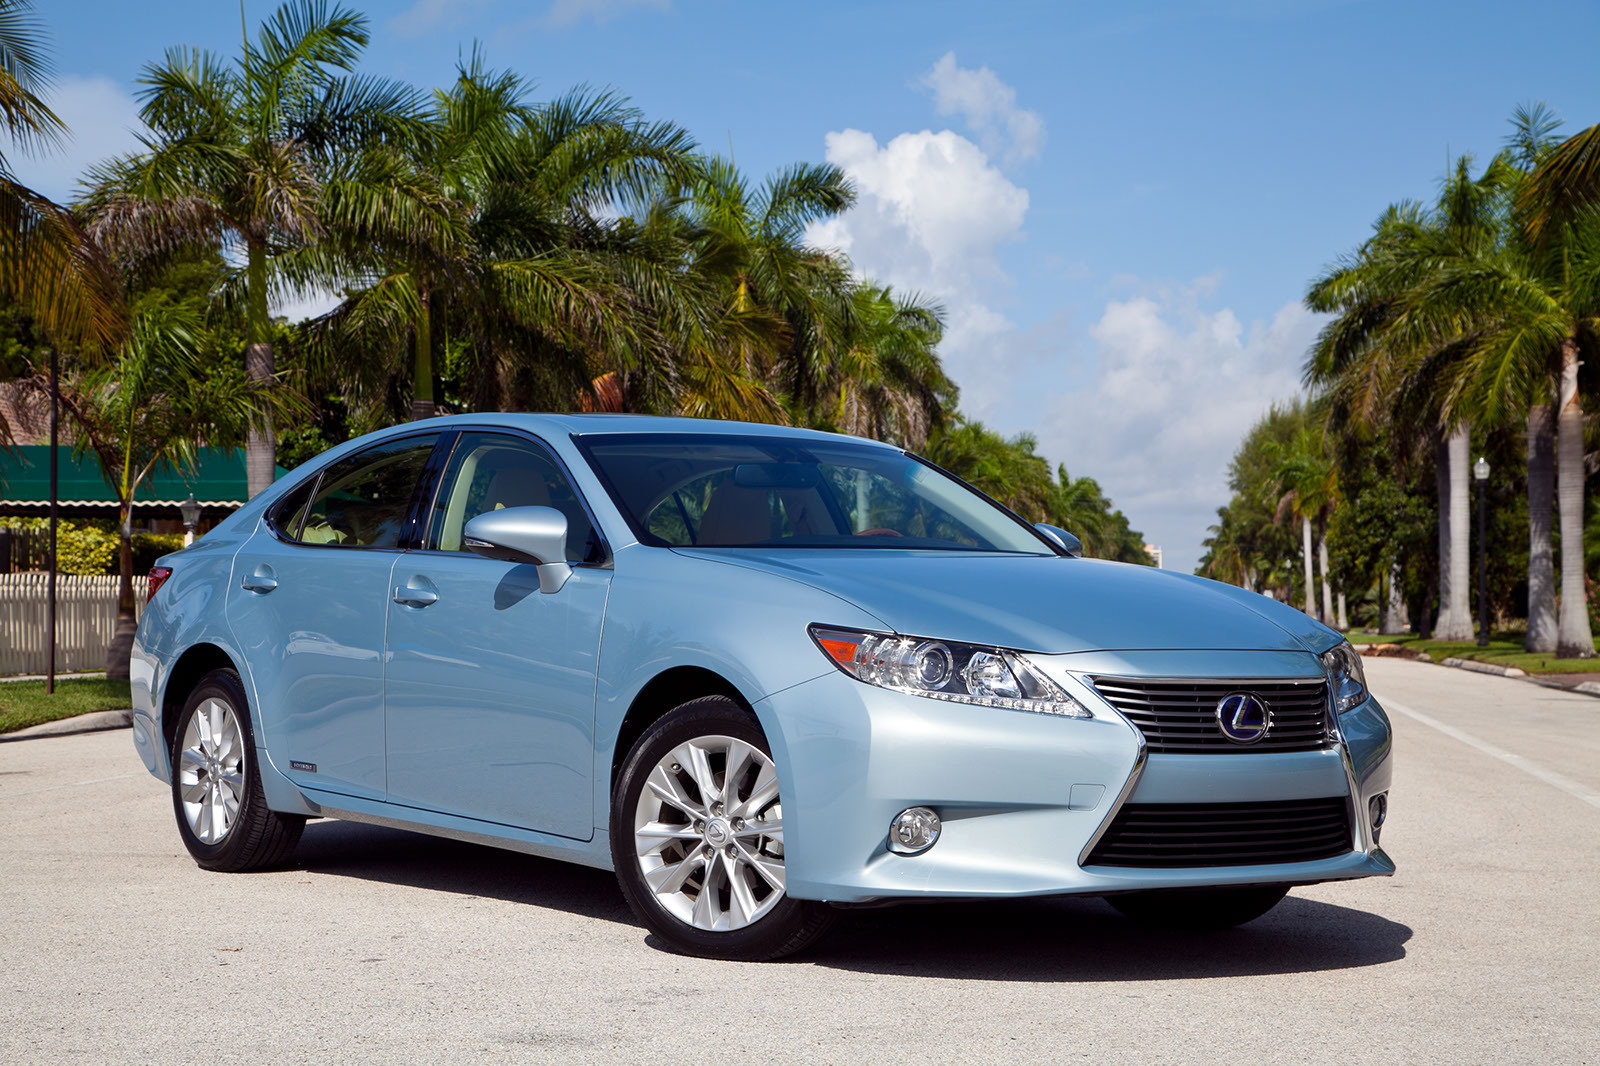 2013 2014 lexus es 300h review gallery top speed. Black Bedroom Furniture Sets. Home Design Ideas